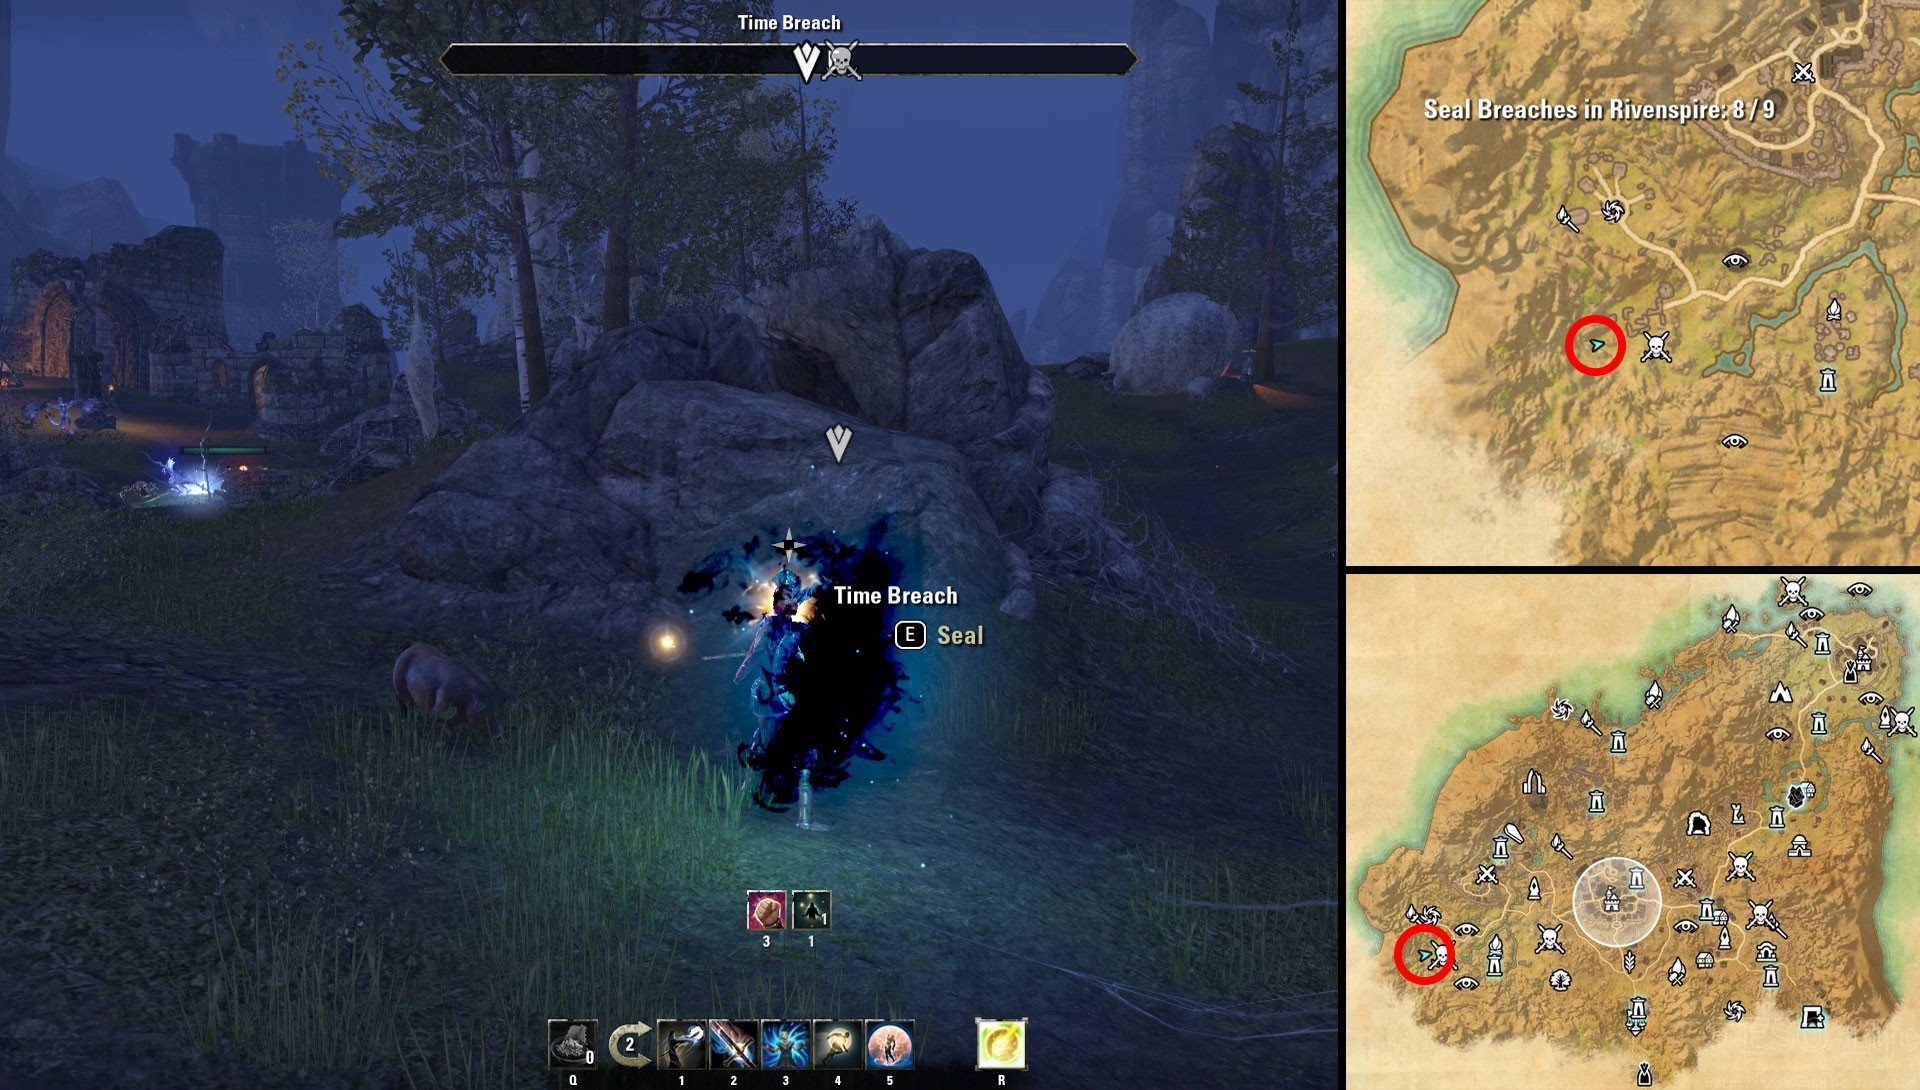 ESO Psijic Time Breach in Rivenspire Time in Doomcrag's Shadow Quest